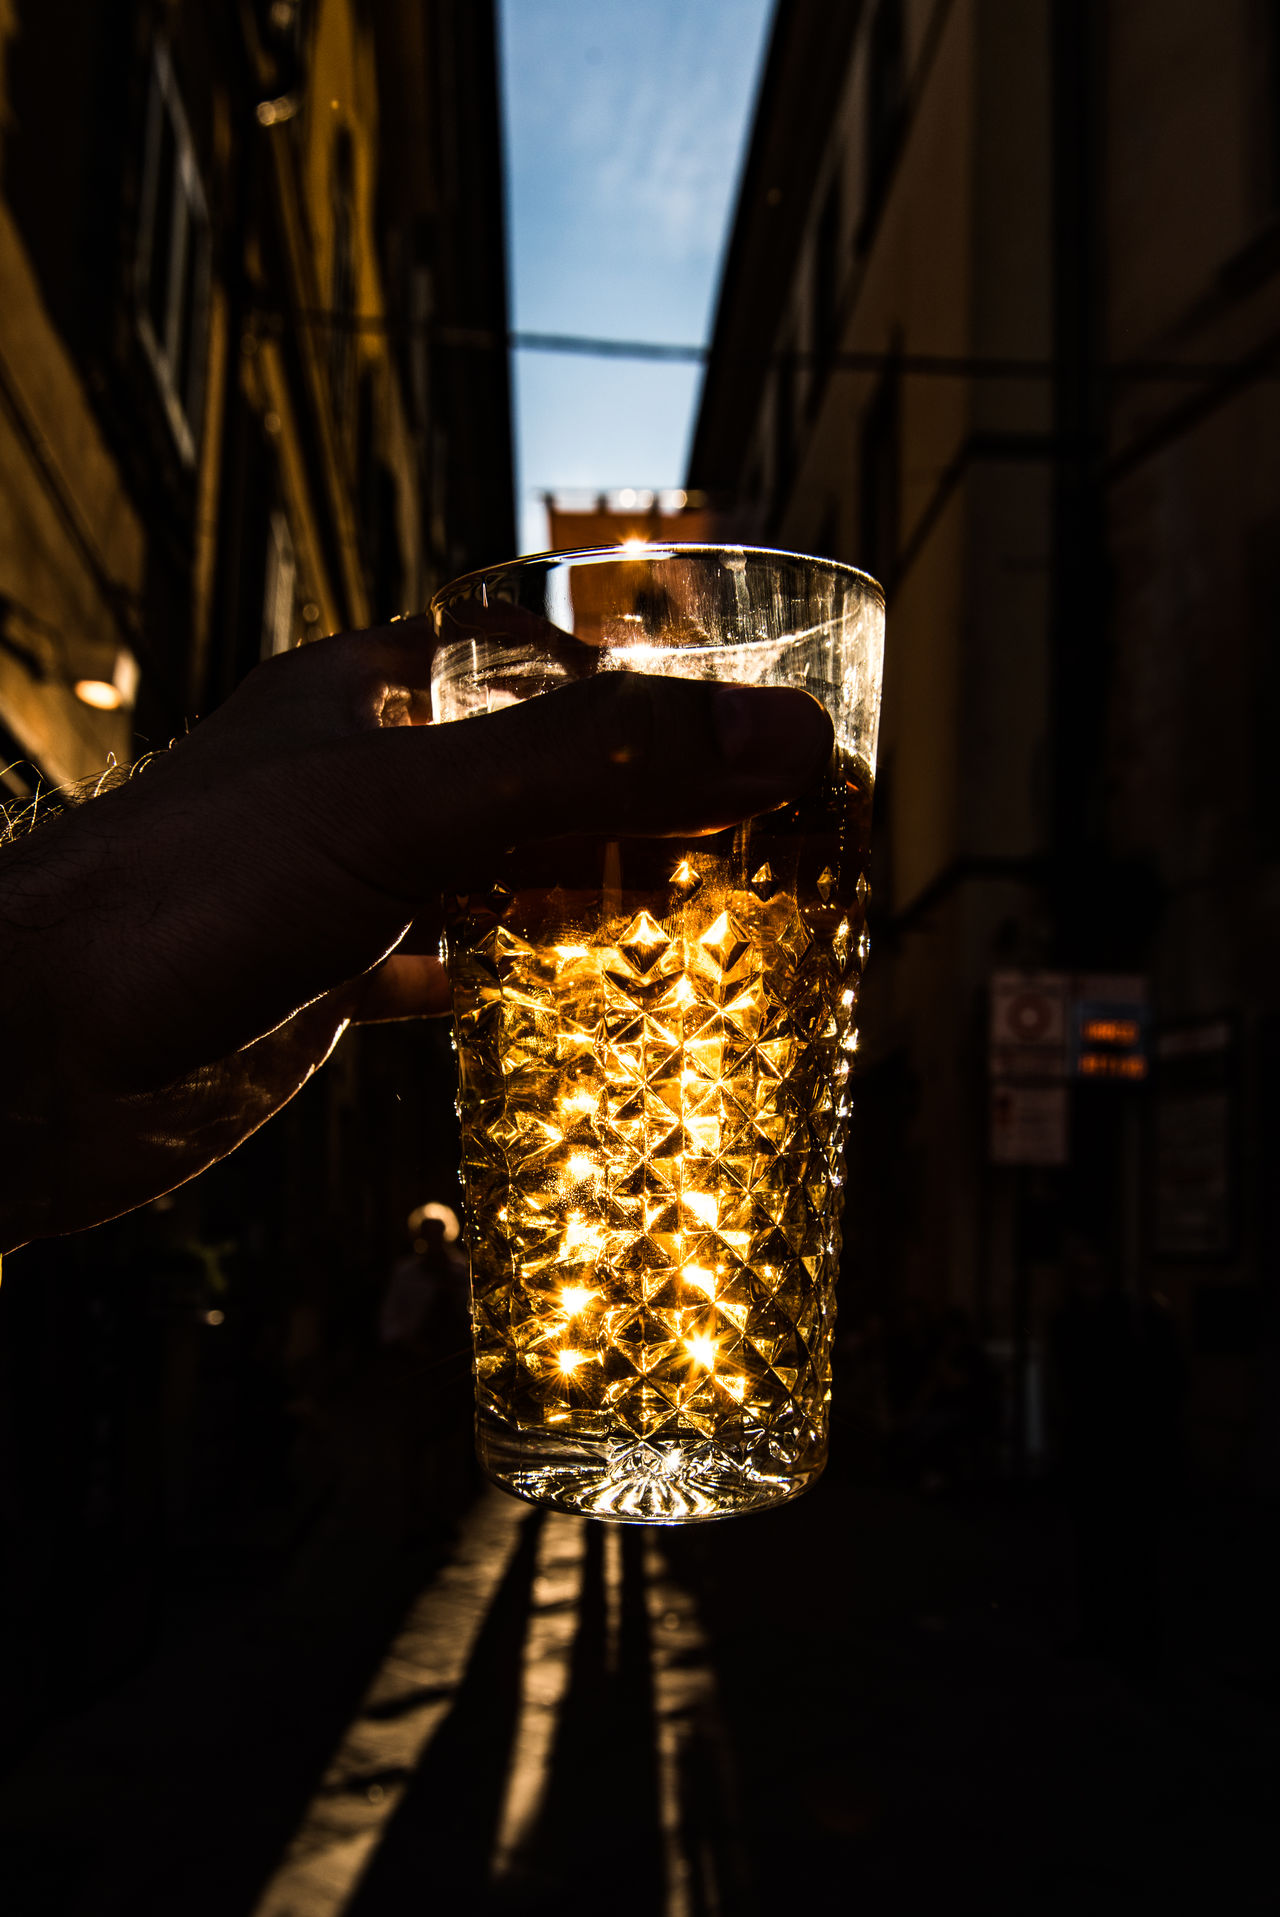 Beer Cheers Dark Decoration Focus On Foreground Glass Glowing Heineken Illuminated Light Lit Night No People Selective Focus Slàinte The Following The Essence Of Summer Colors And Patterns TakeoverContrast